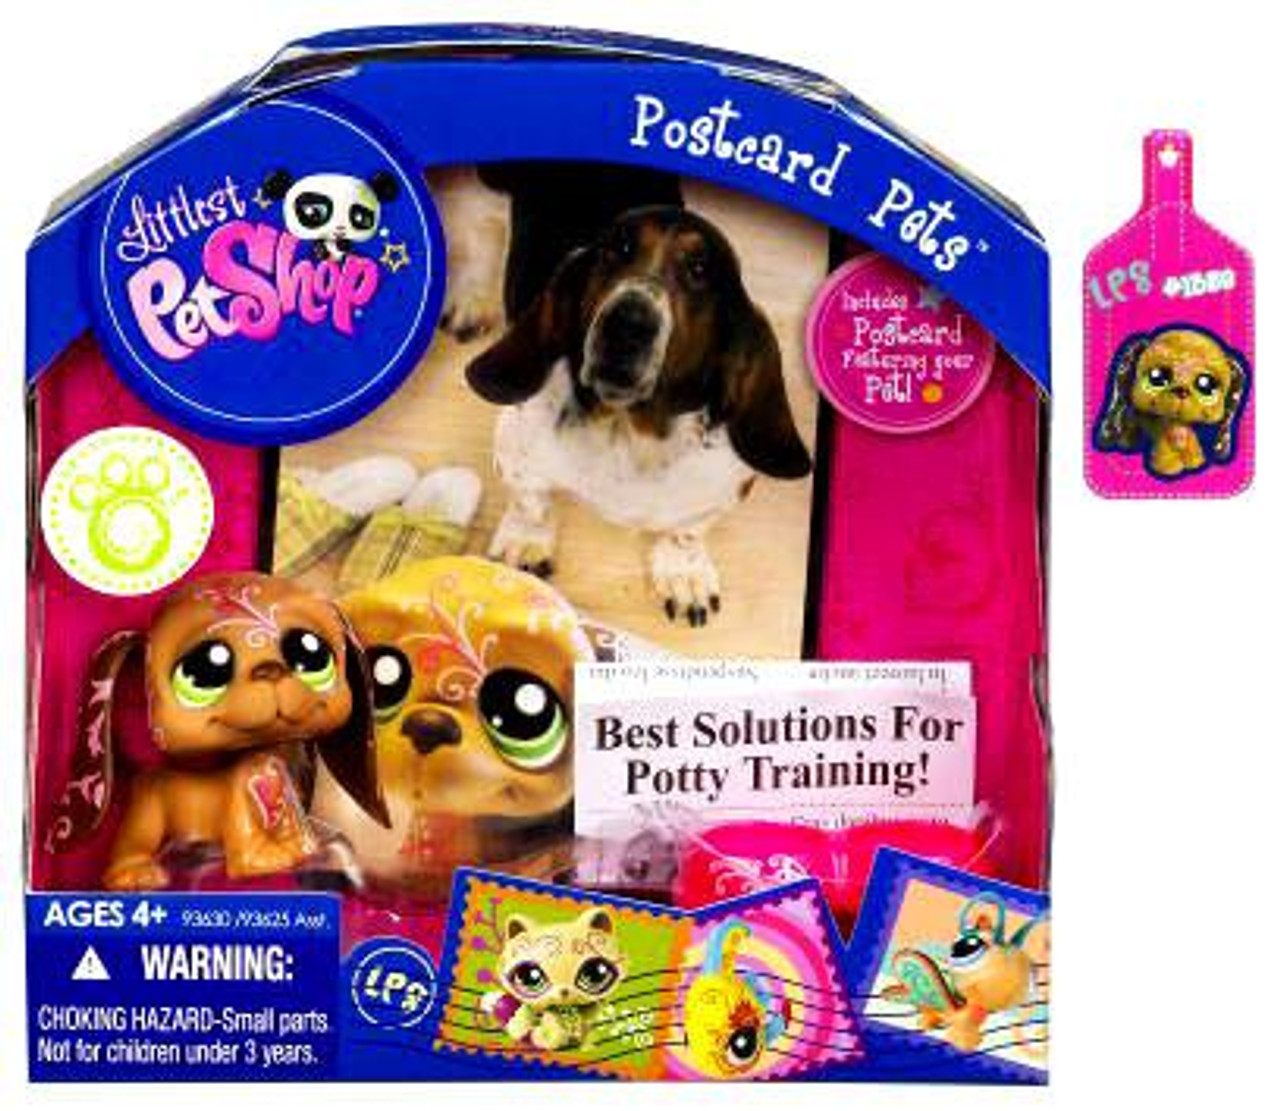 Littlest Pet Shop Postcard Pets Figure